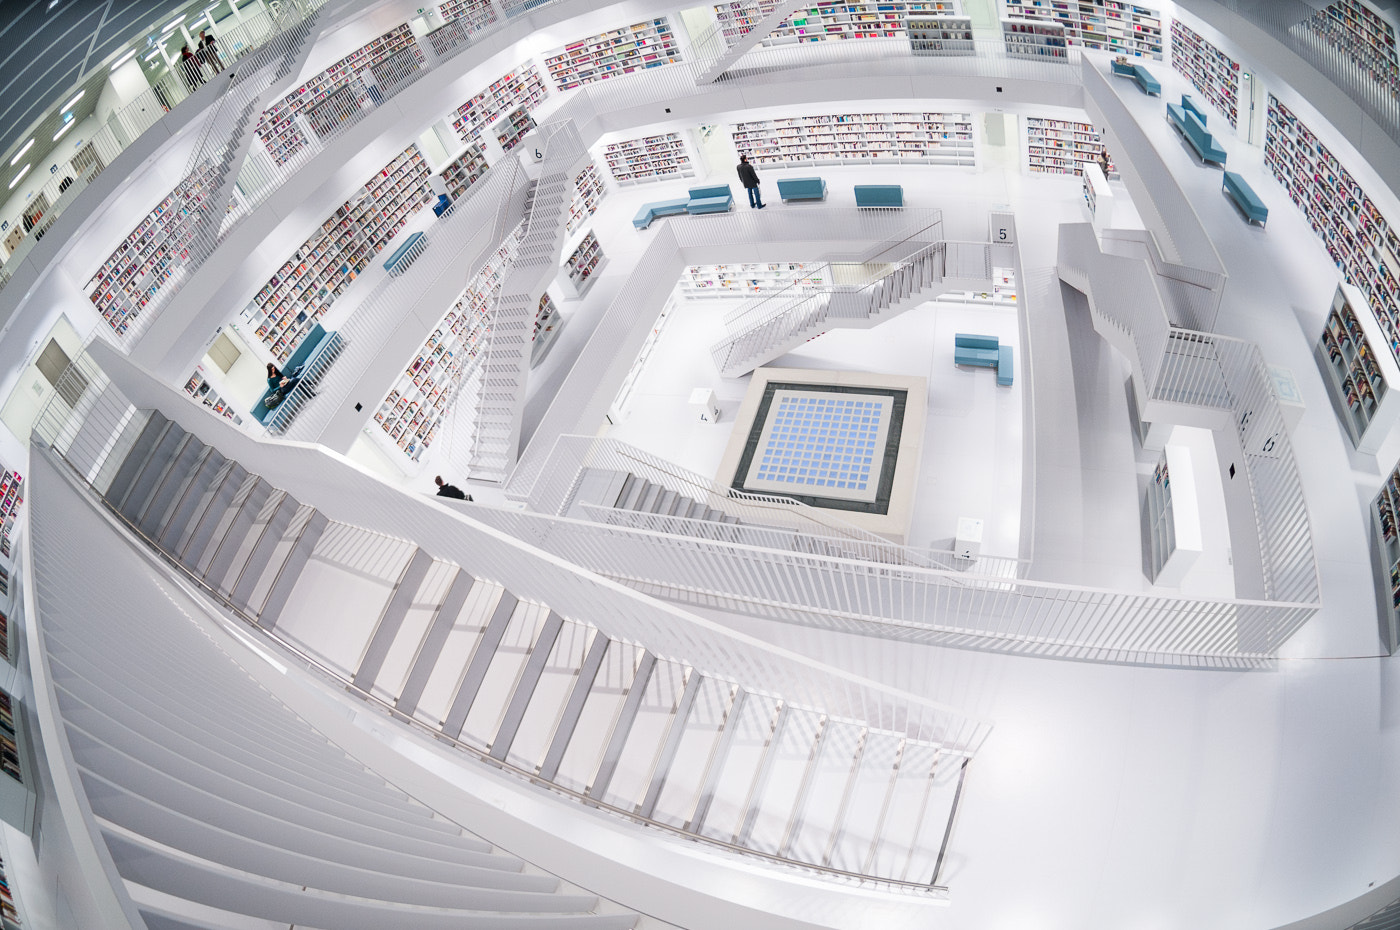 Photograph Library by Thomas Weinholzner on 500px